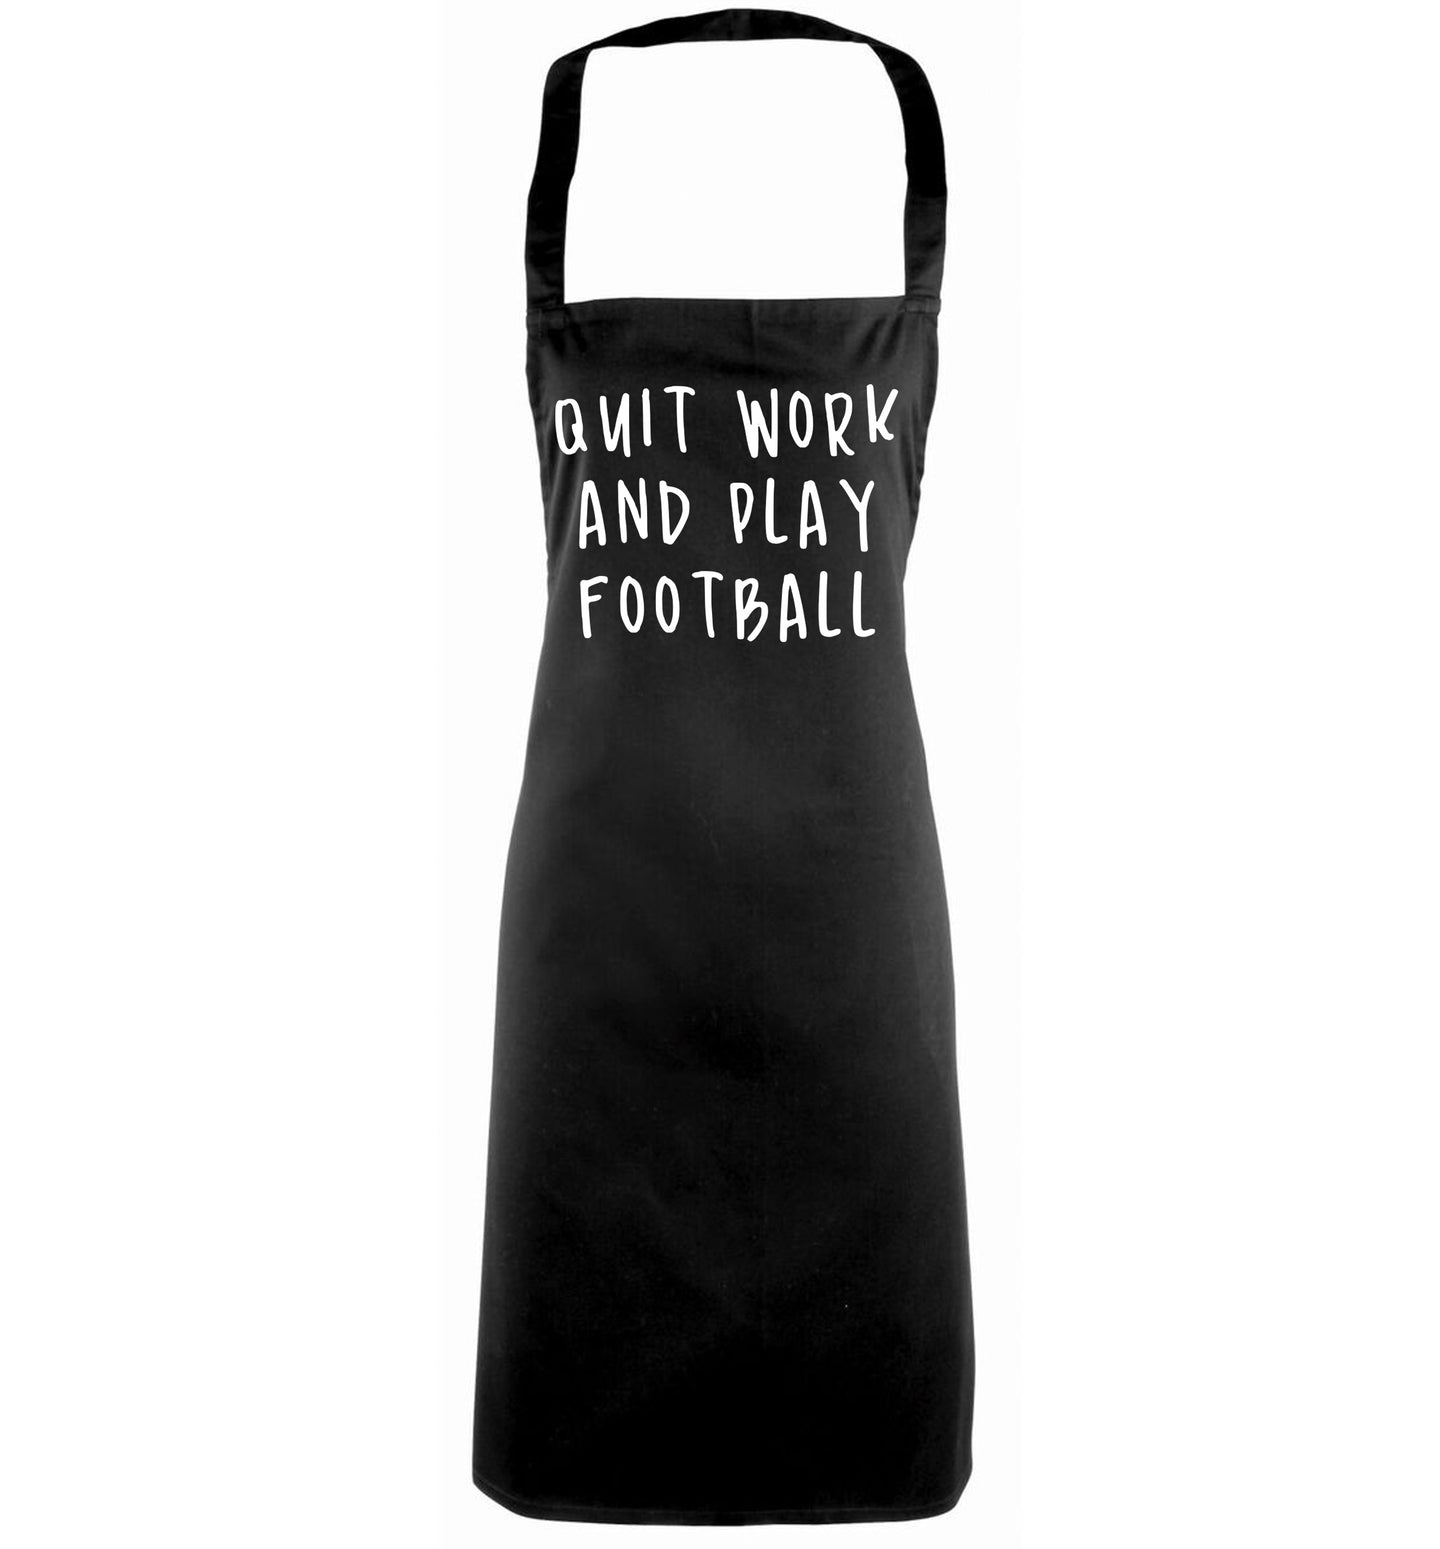 Quit work play football black apron